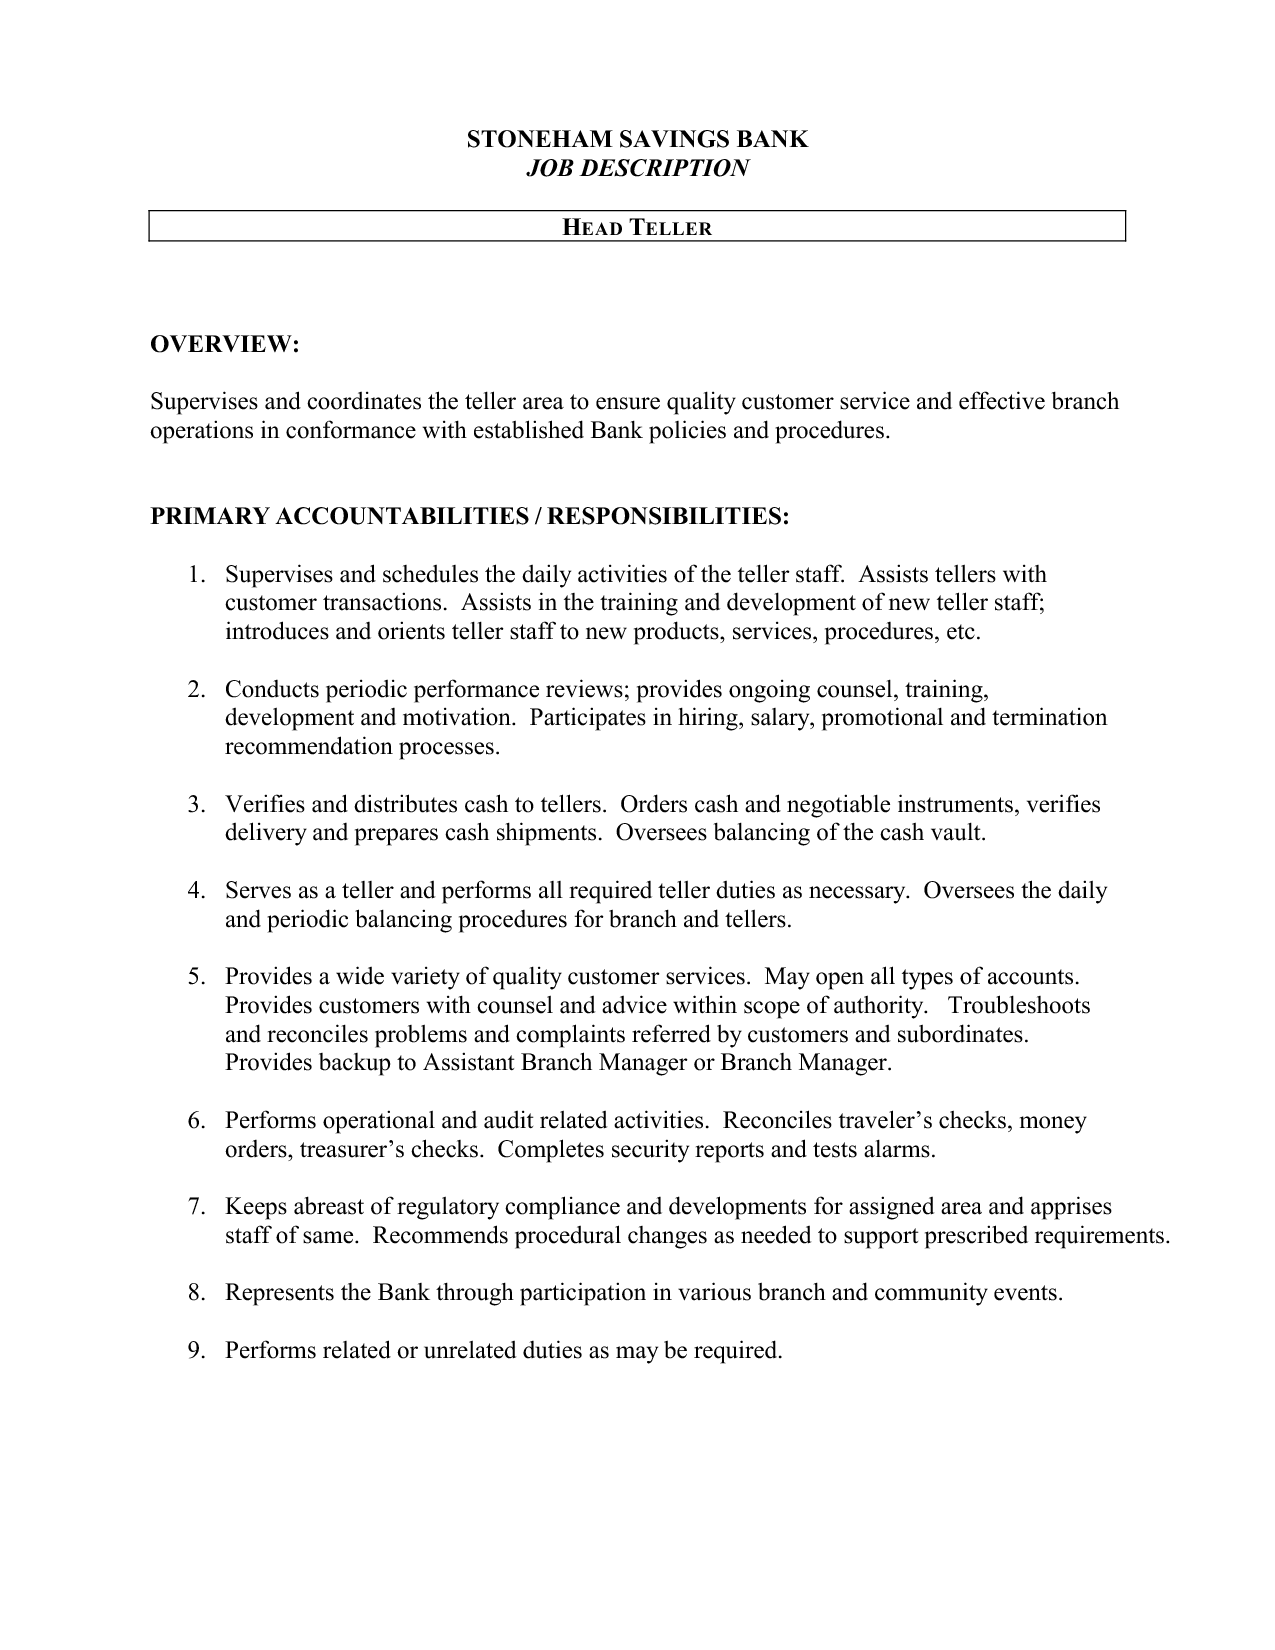 bank teller job description template